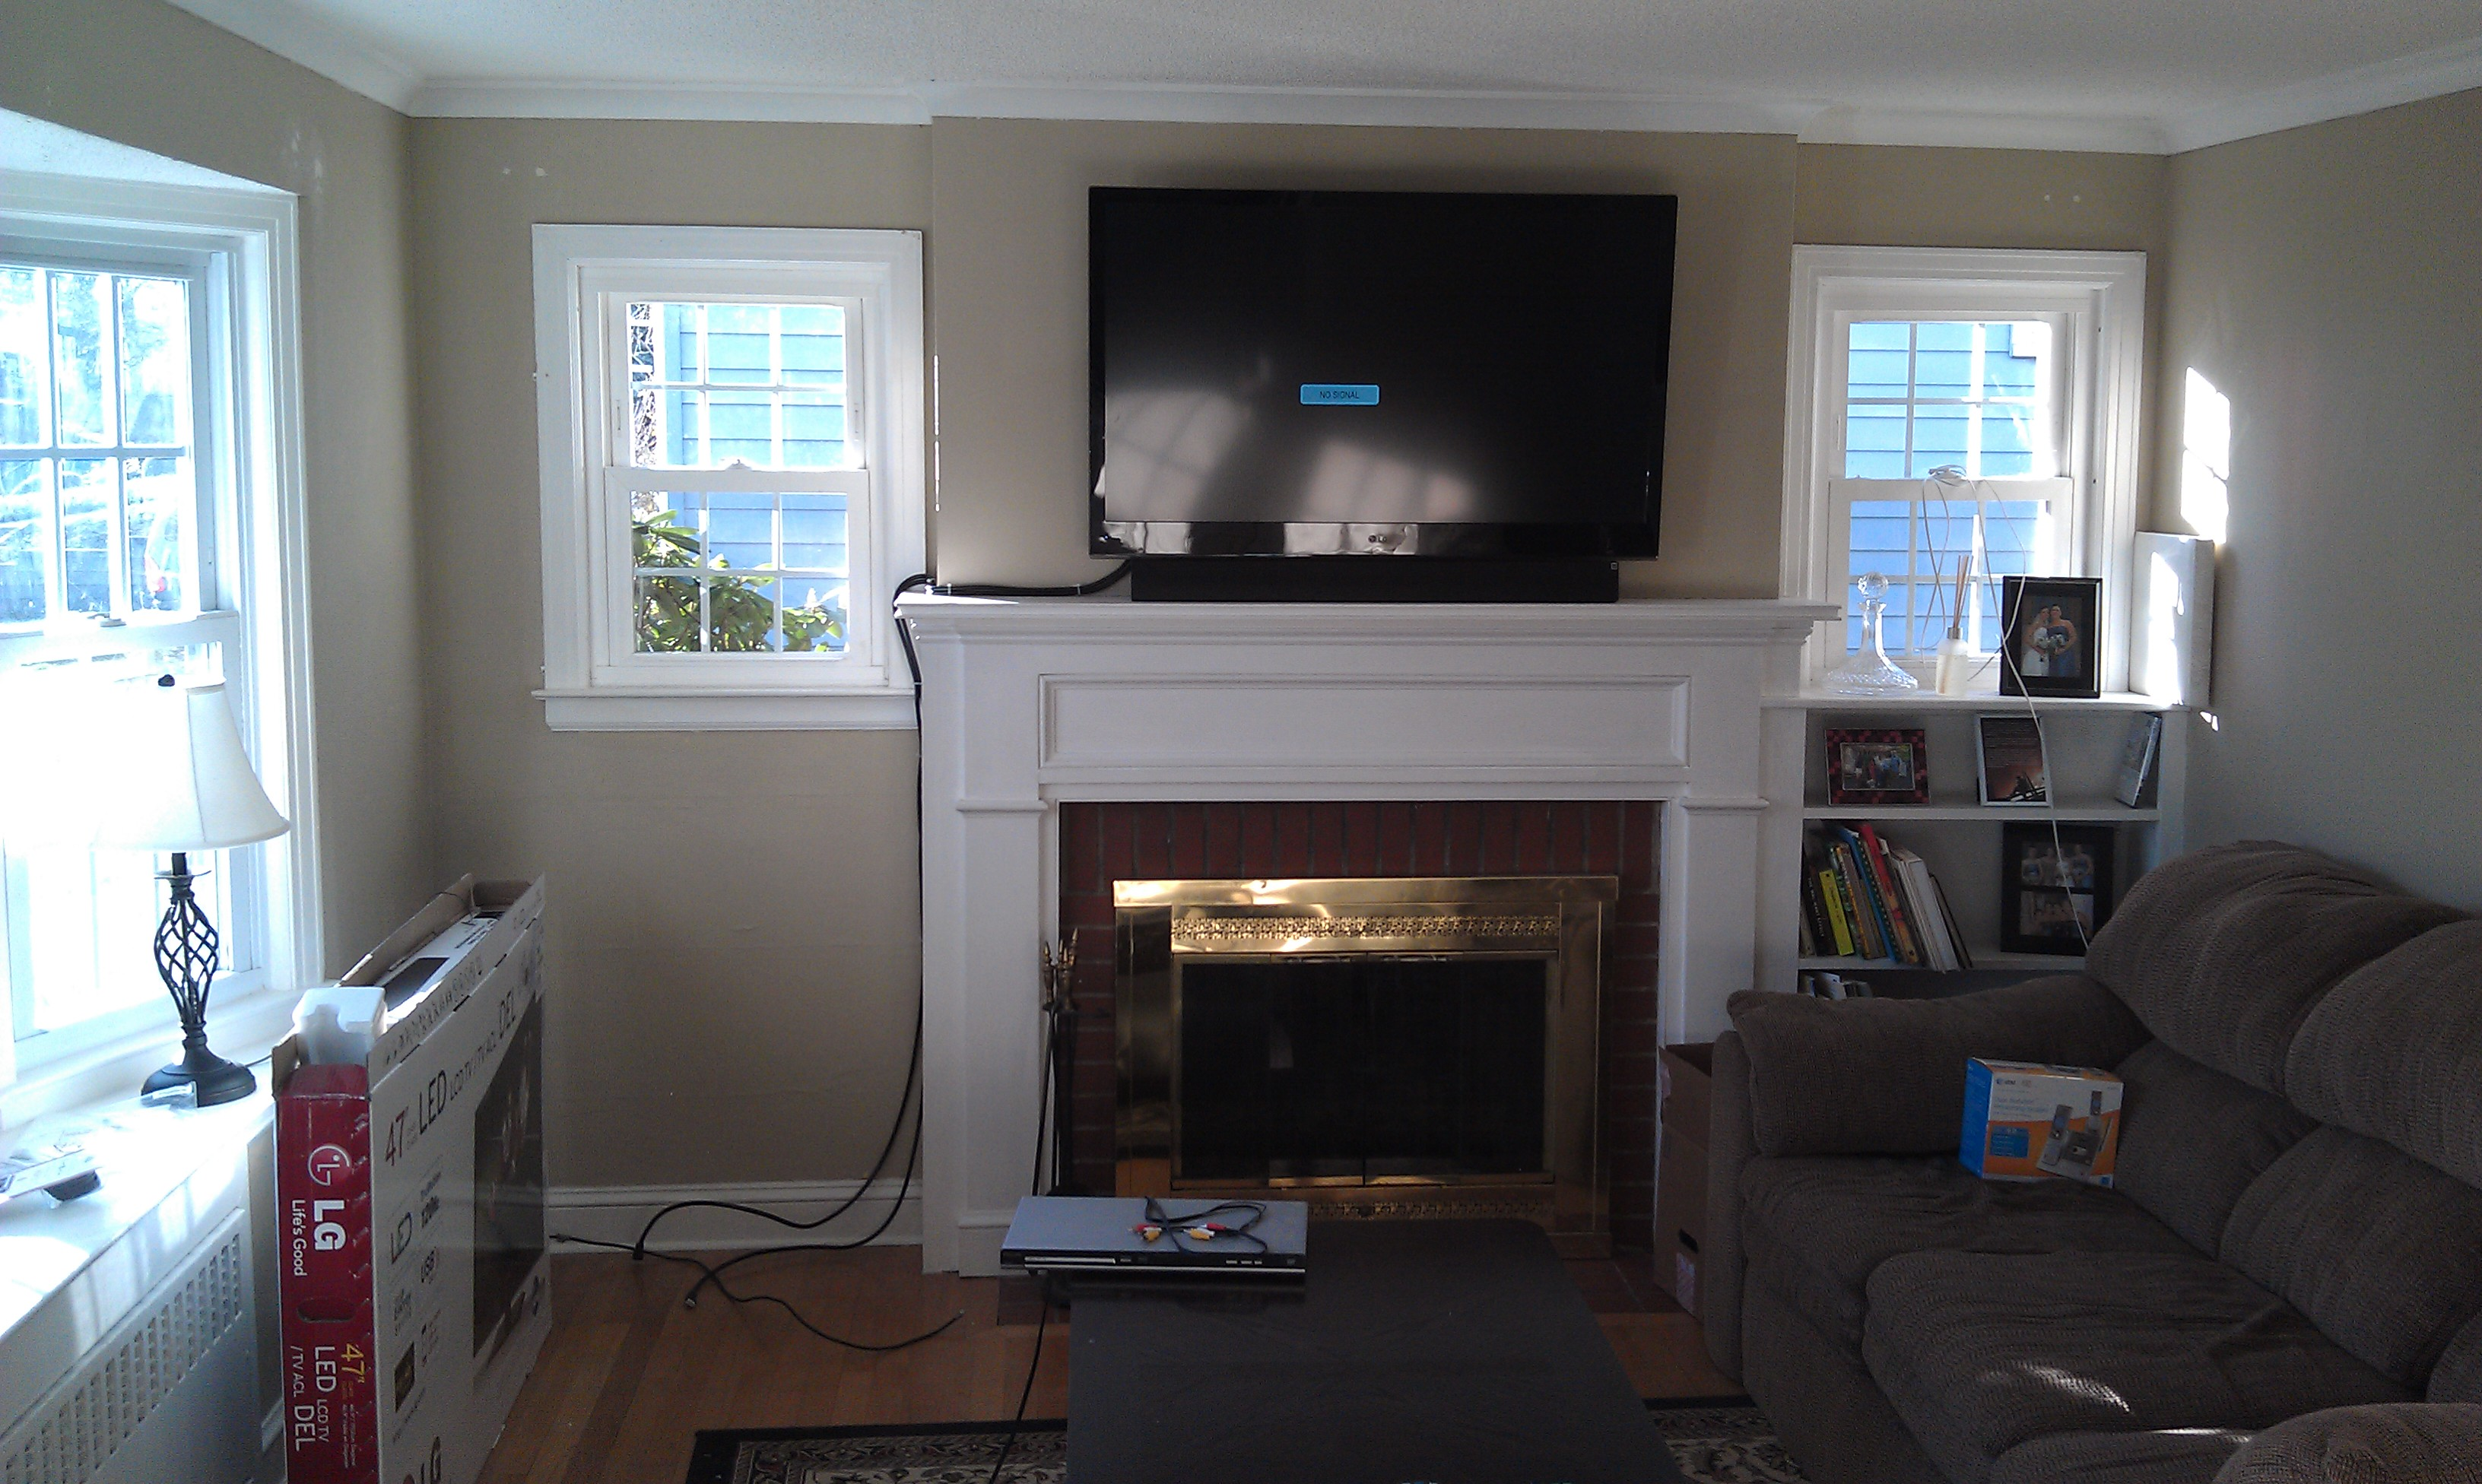 richeygroup | Home Theater Installation | Page 3